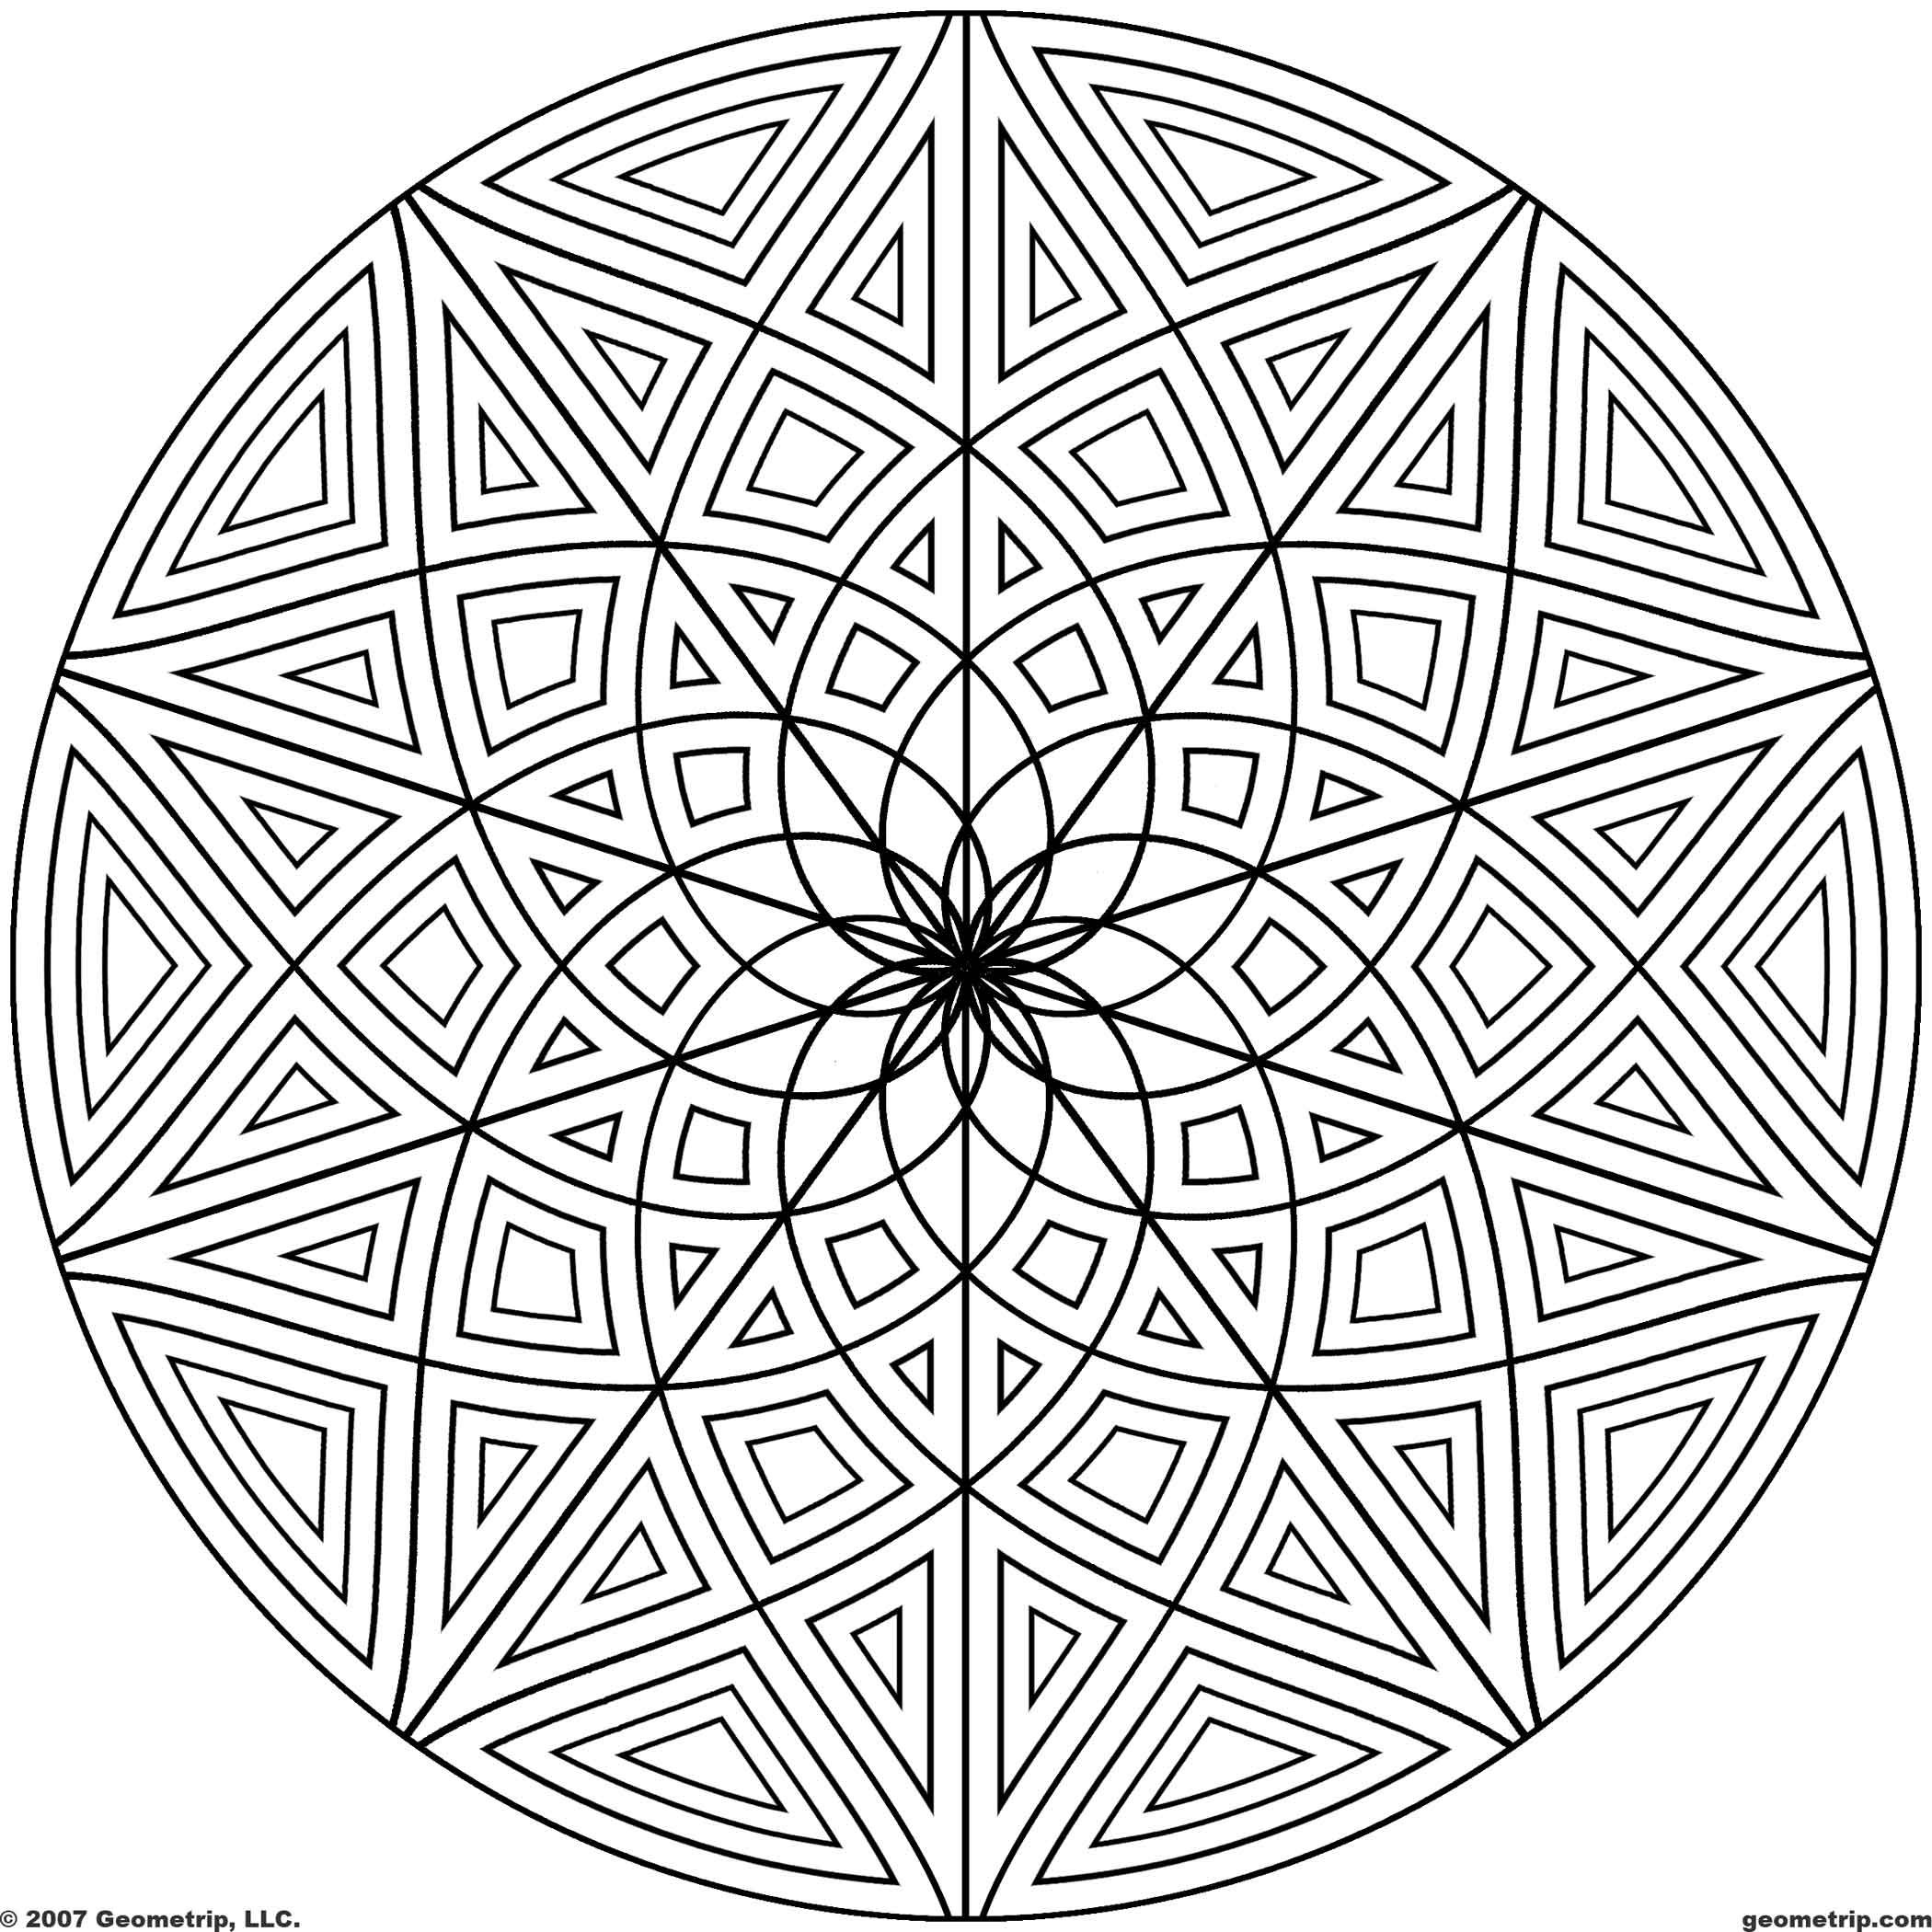 Colouring sheets hard - Images Of Printable Hard Geometric Coloring Pages Geometrip Com Free Geometric Coloring Designs